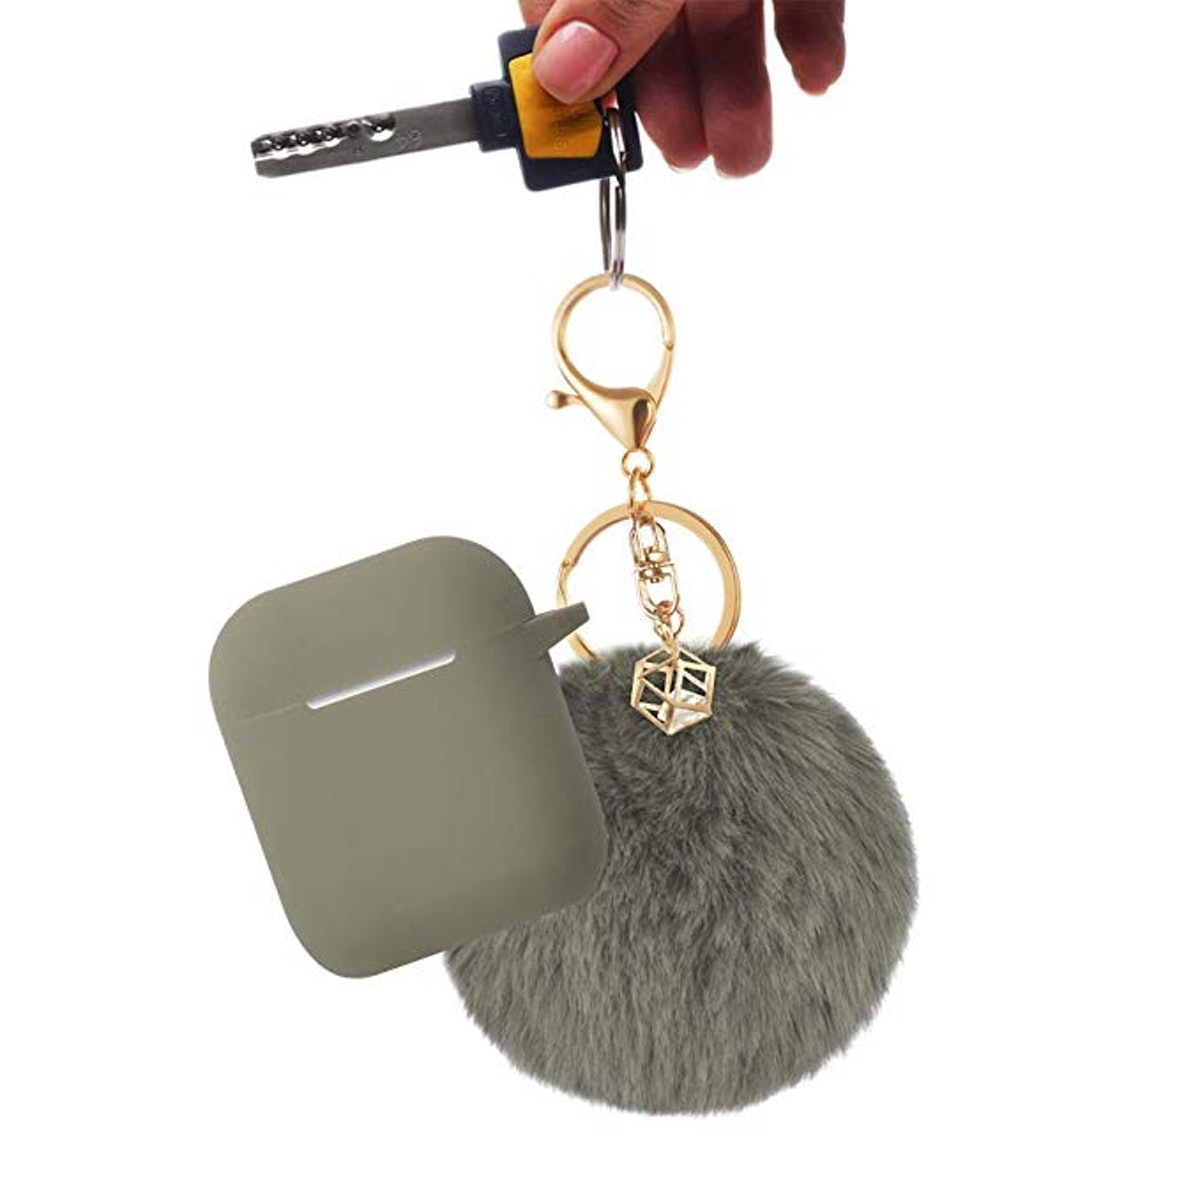 BlUEWIND Air Pods Protective Keychain Case